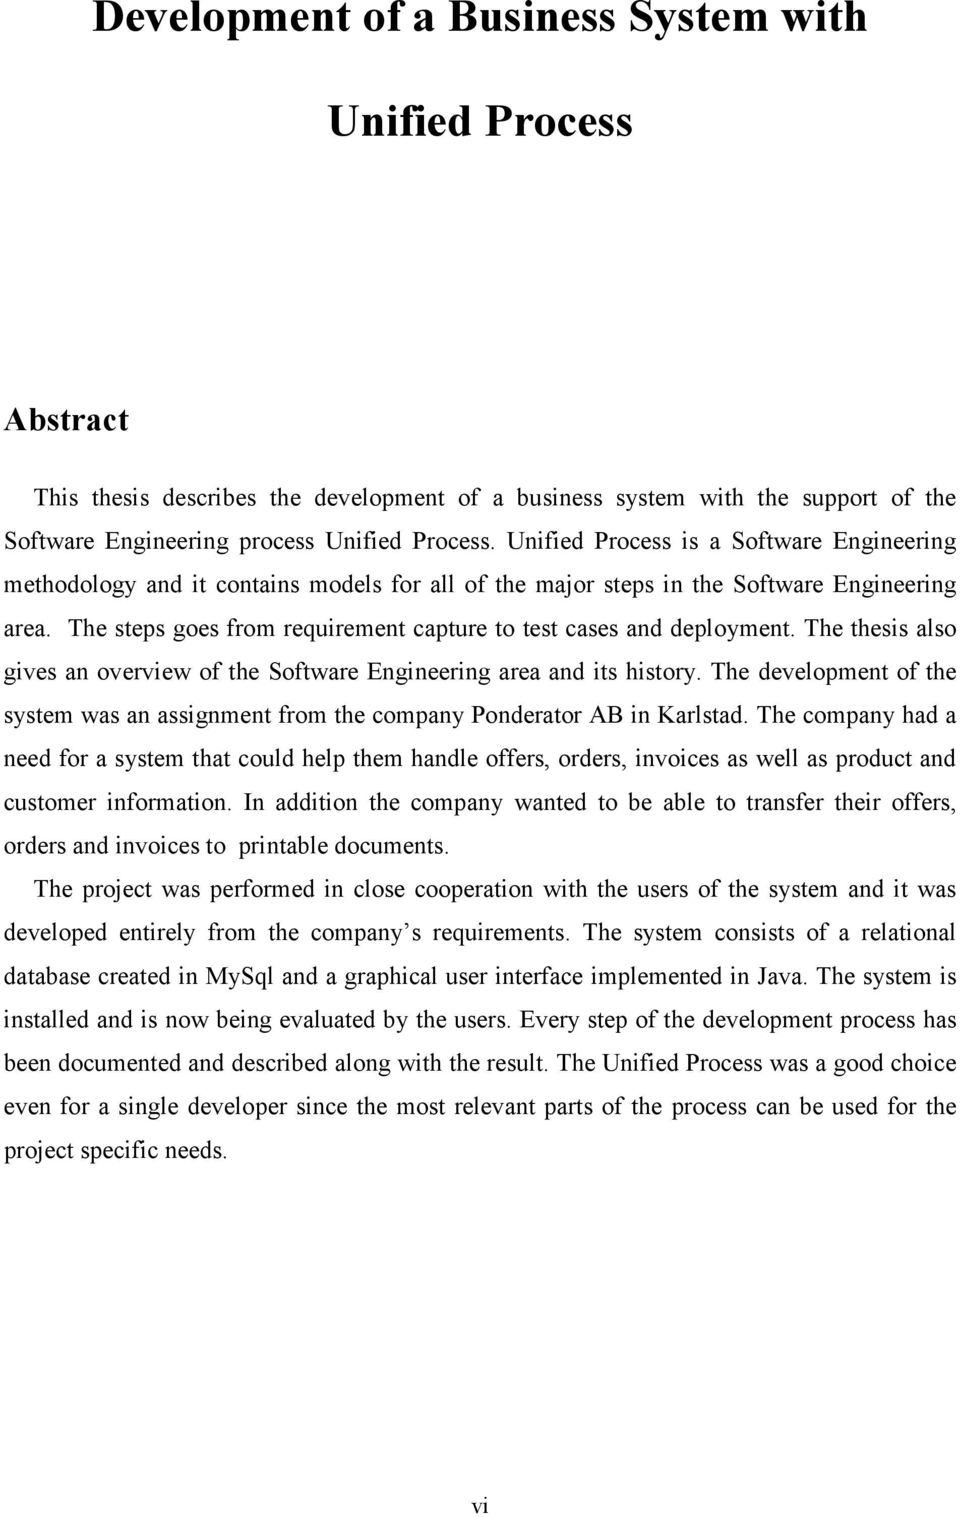 The steps goes from requirement capture to test cases and deployment. The thesis also gives an overview of the Software Engineering area and its history.